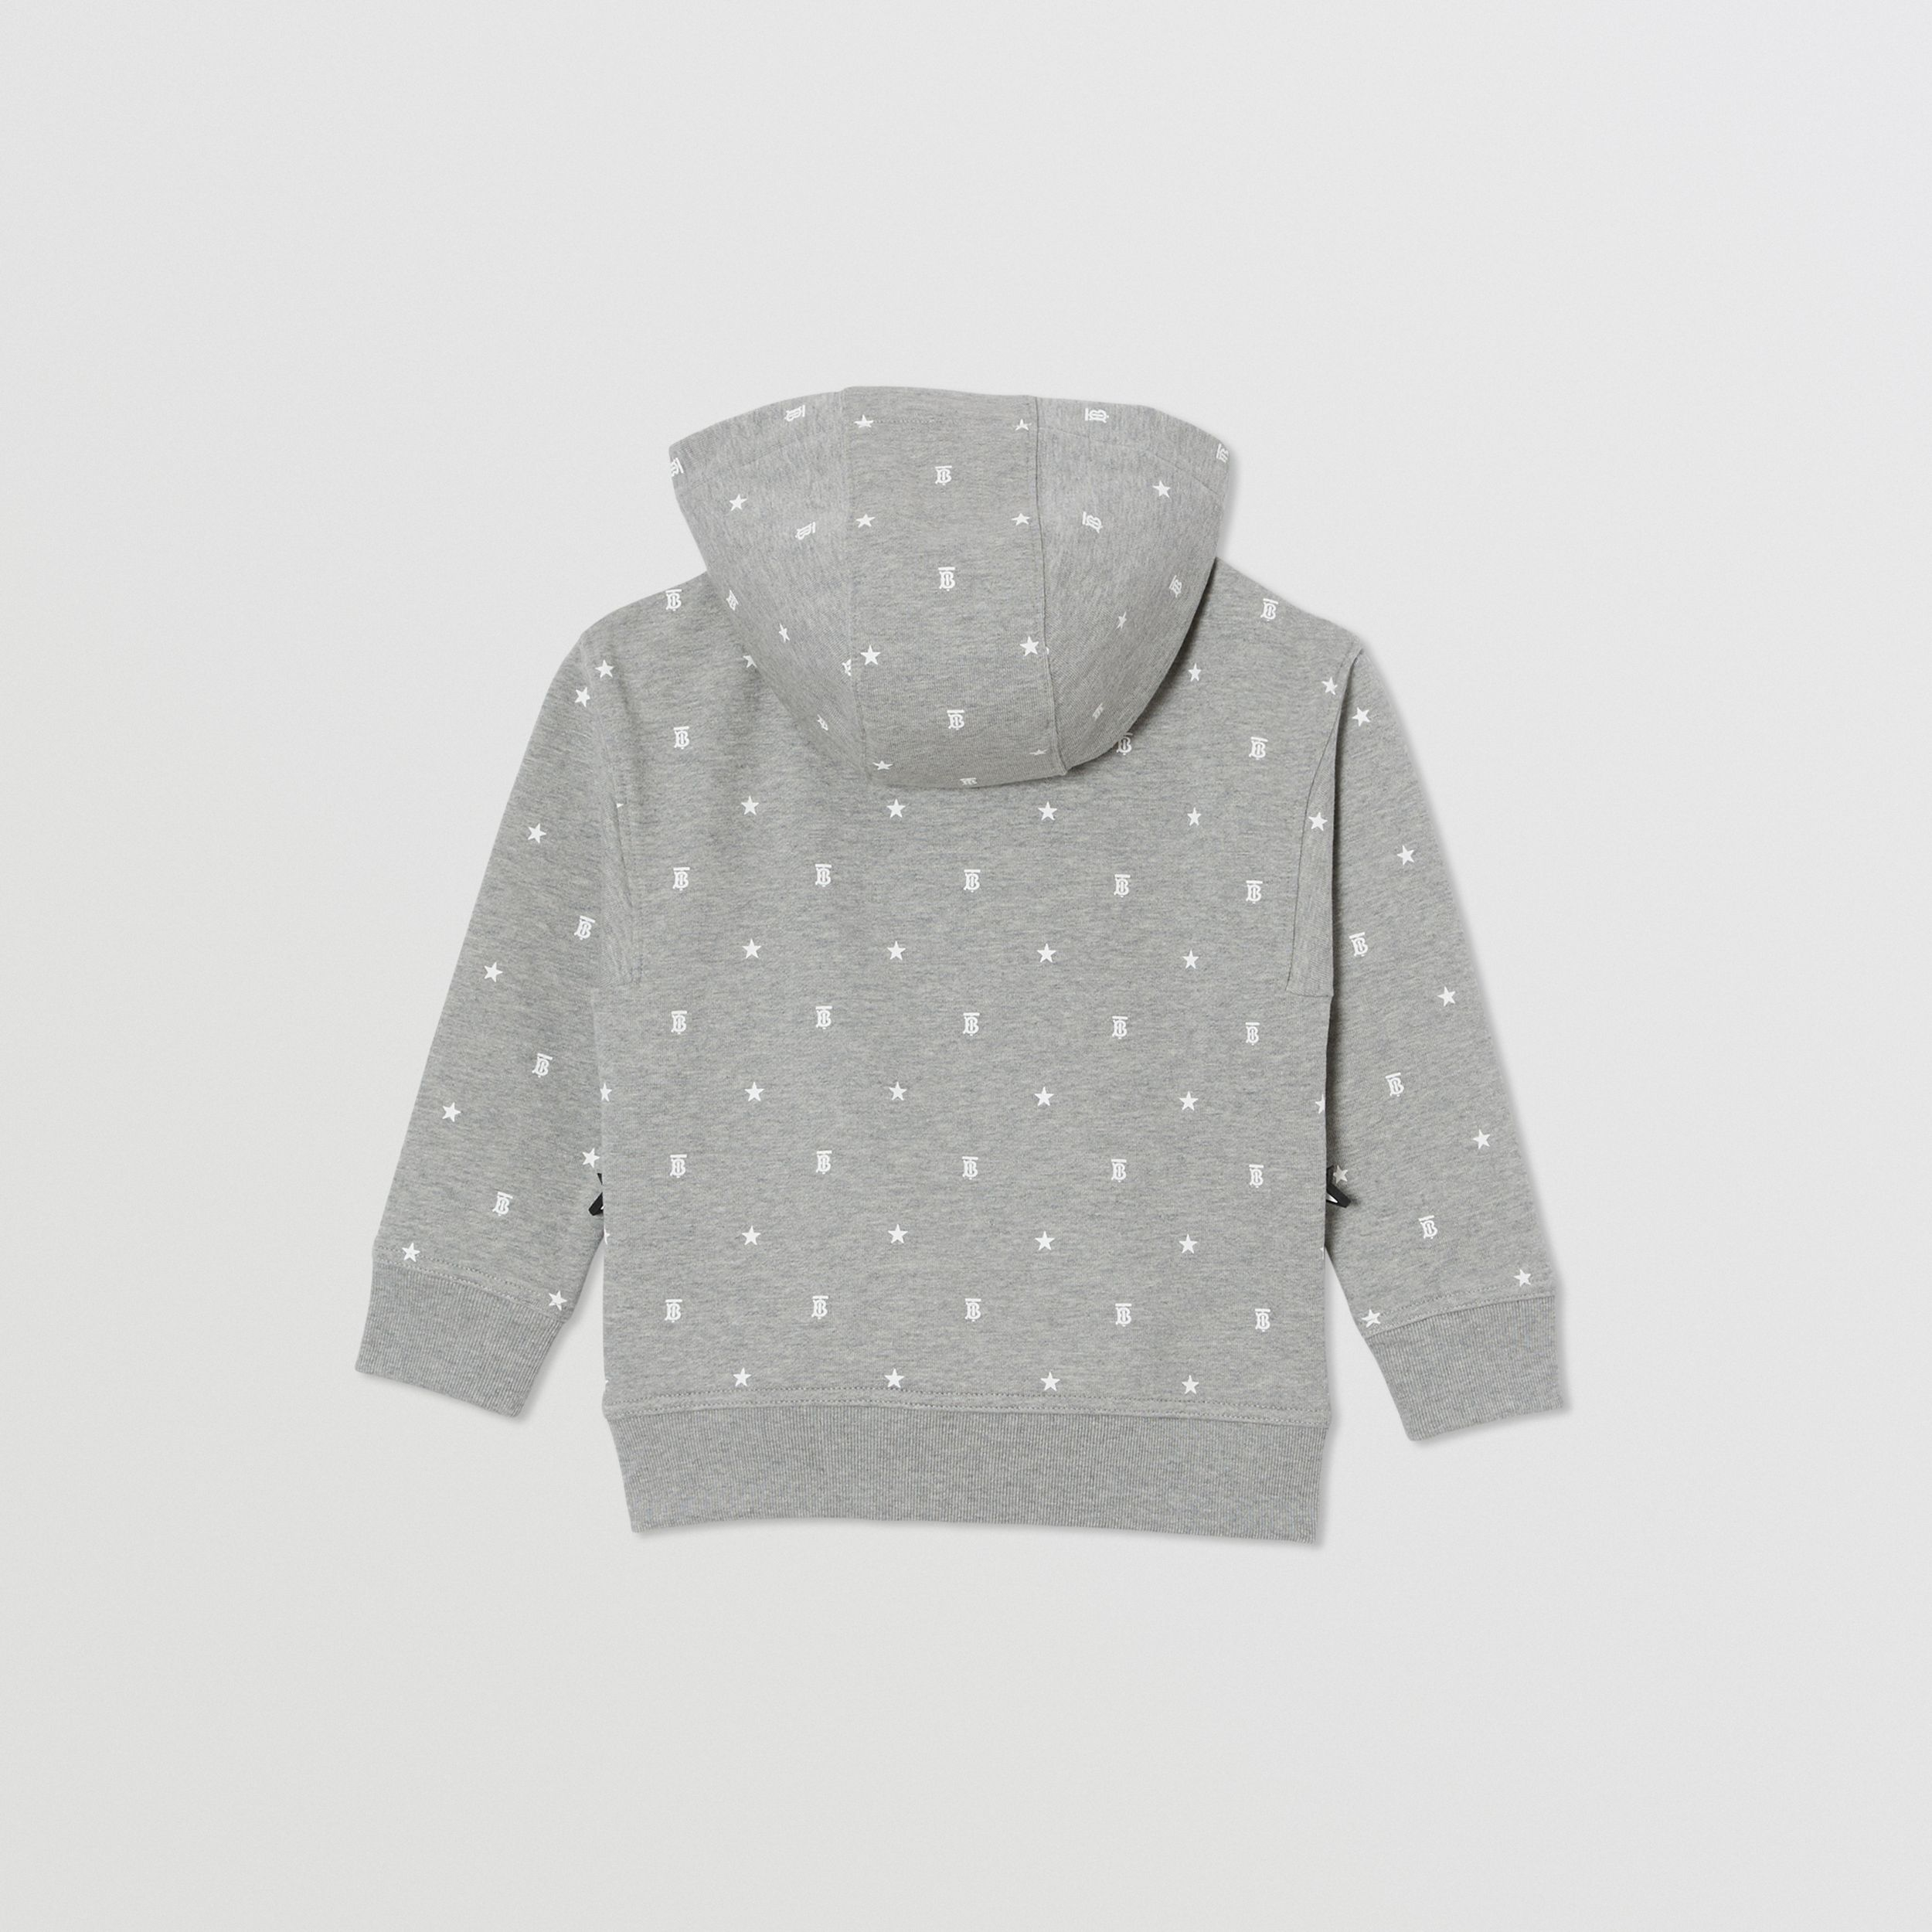 Star and Monogram Print Cotton Hooded Top in Grey | Burberry - 4